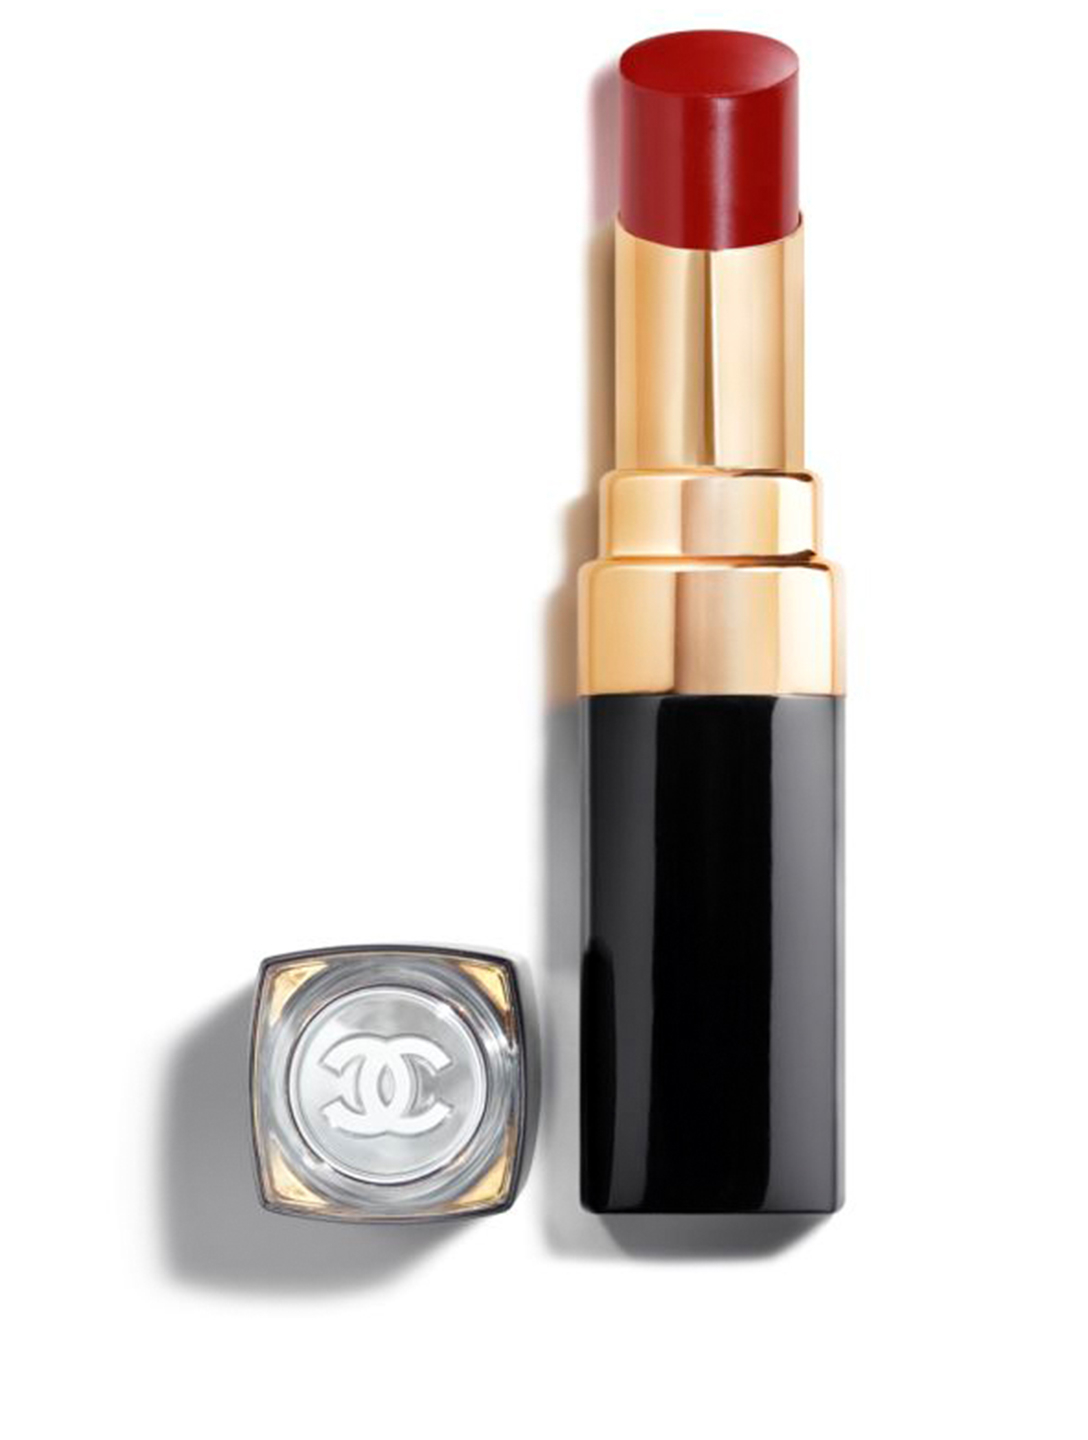 CHANEL Colour, Shine, Intensity In A Flash CHANEL Red